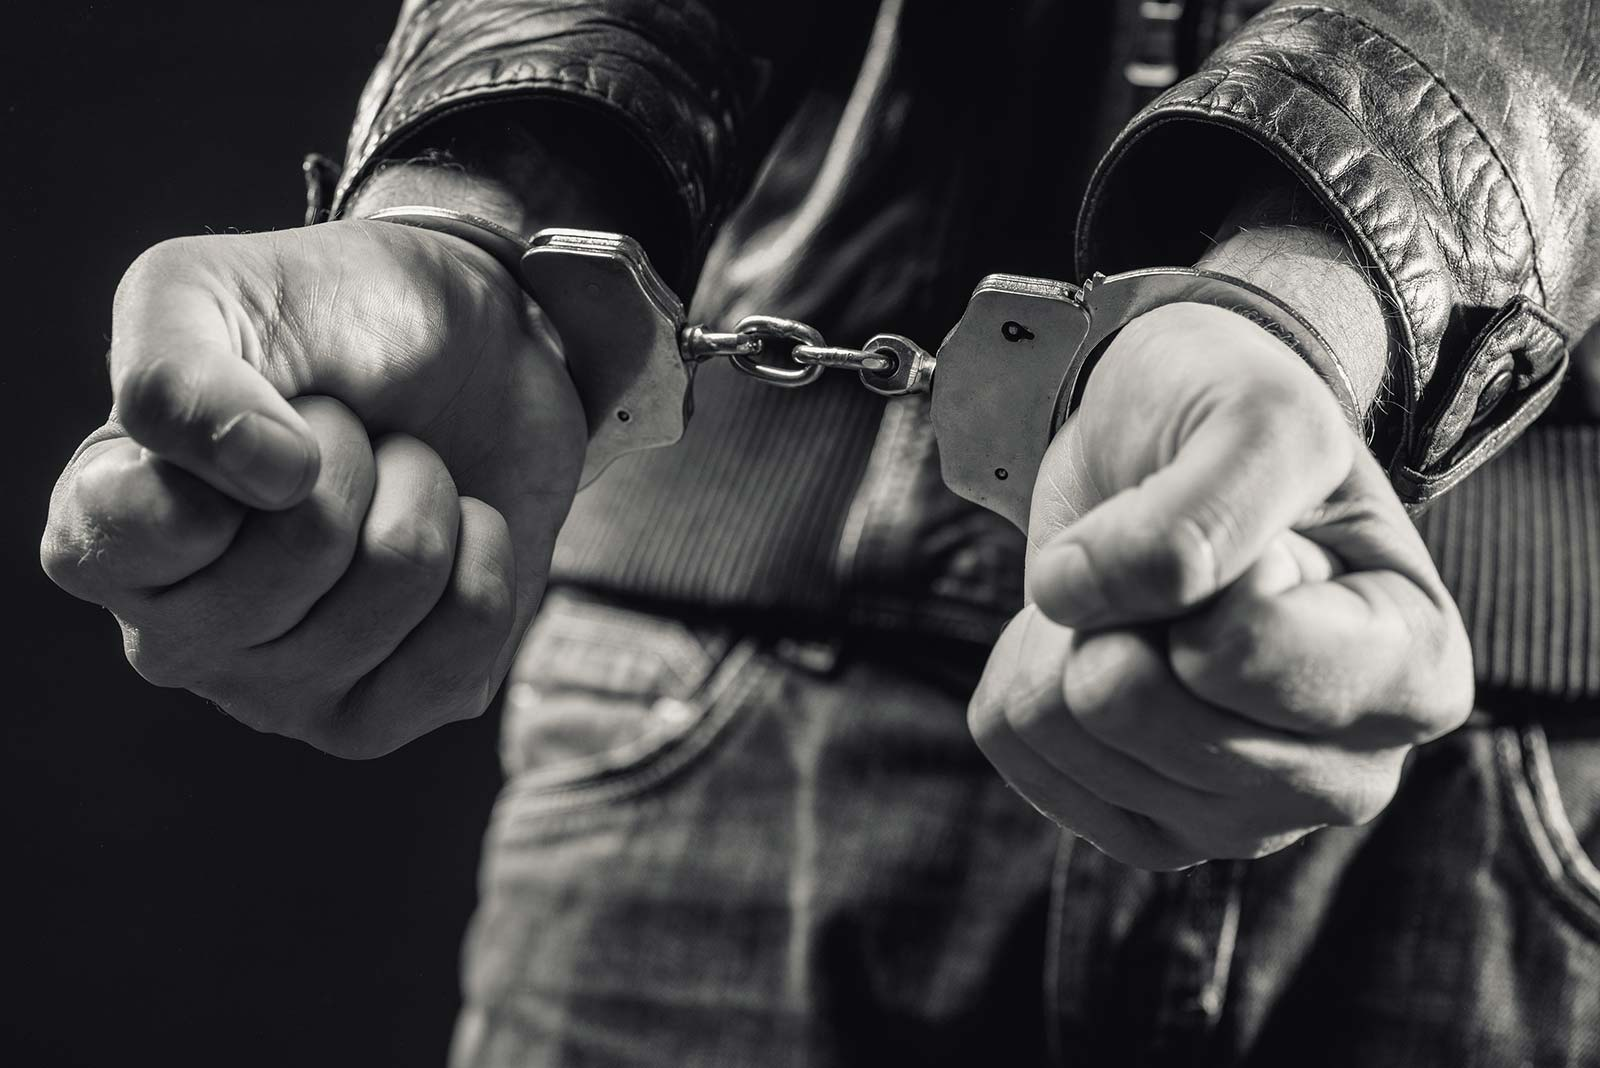 How To Find Out If You Have a Warrant in Las Vegas - Las